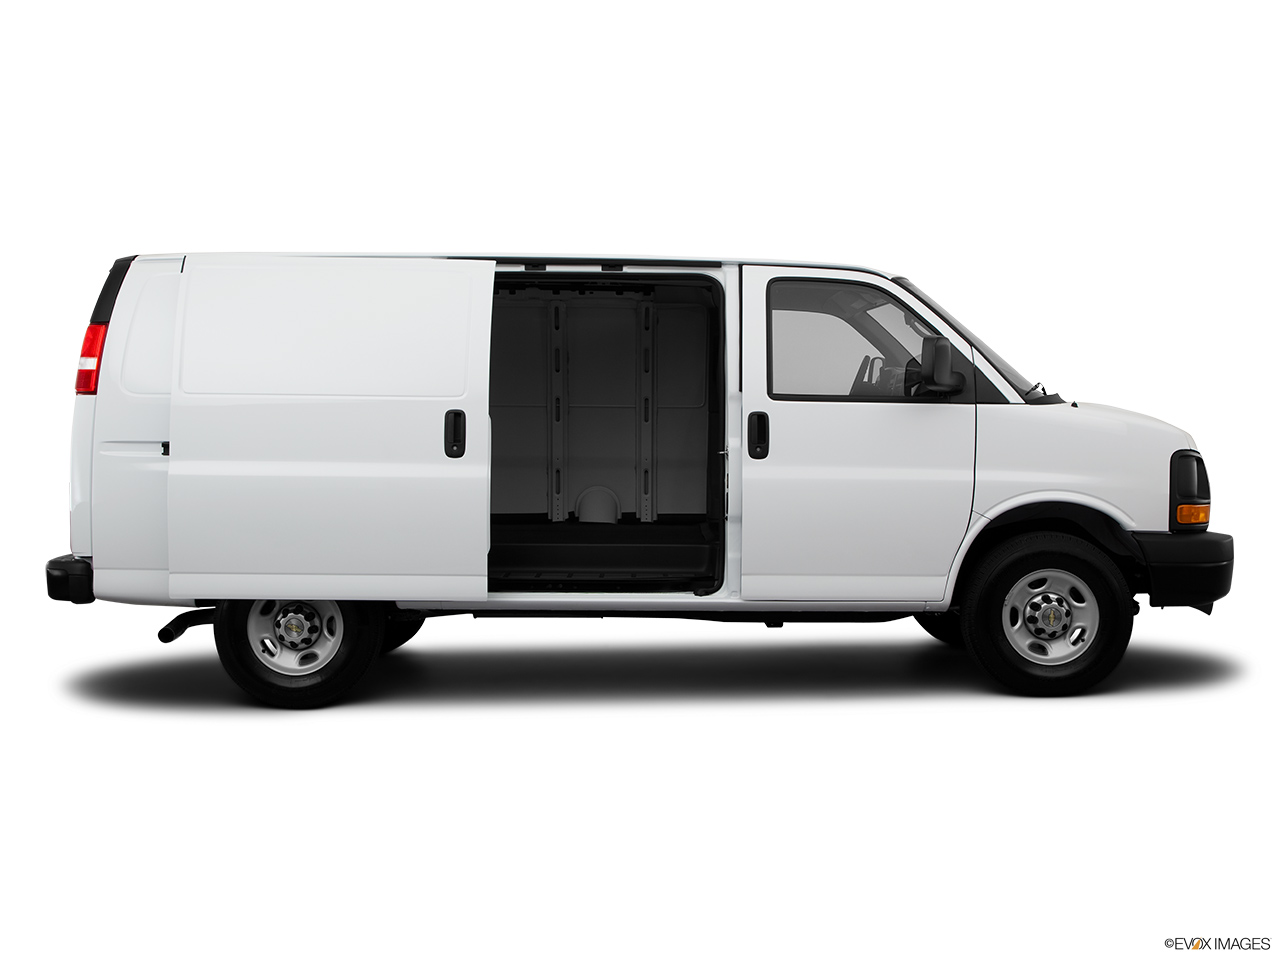 9f0ad1018d 2014 Chevrolet Express Commercial Cutaway 3500 Van 139 - Passenger s side  view